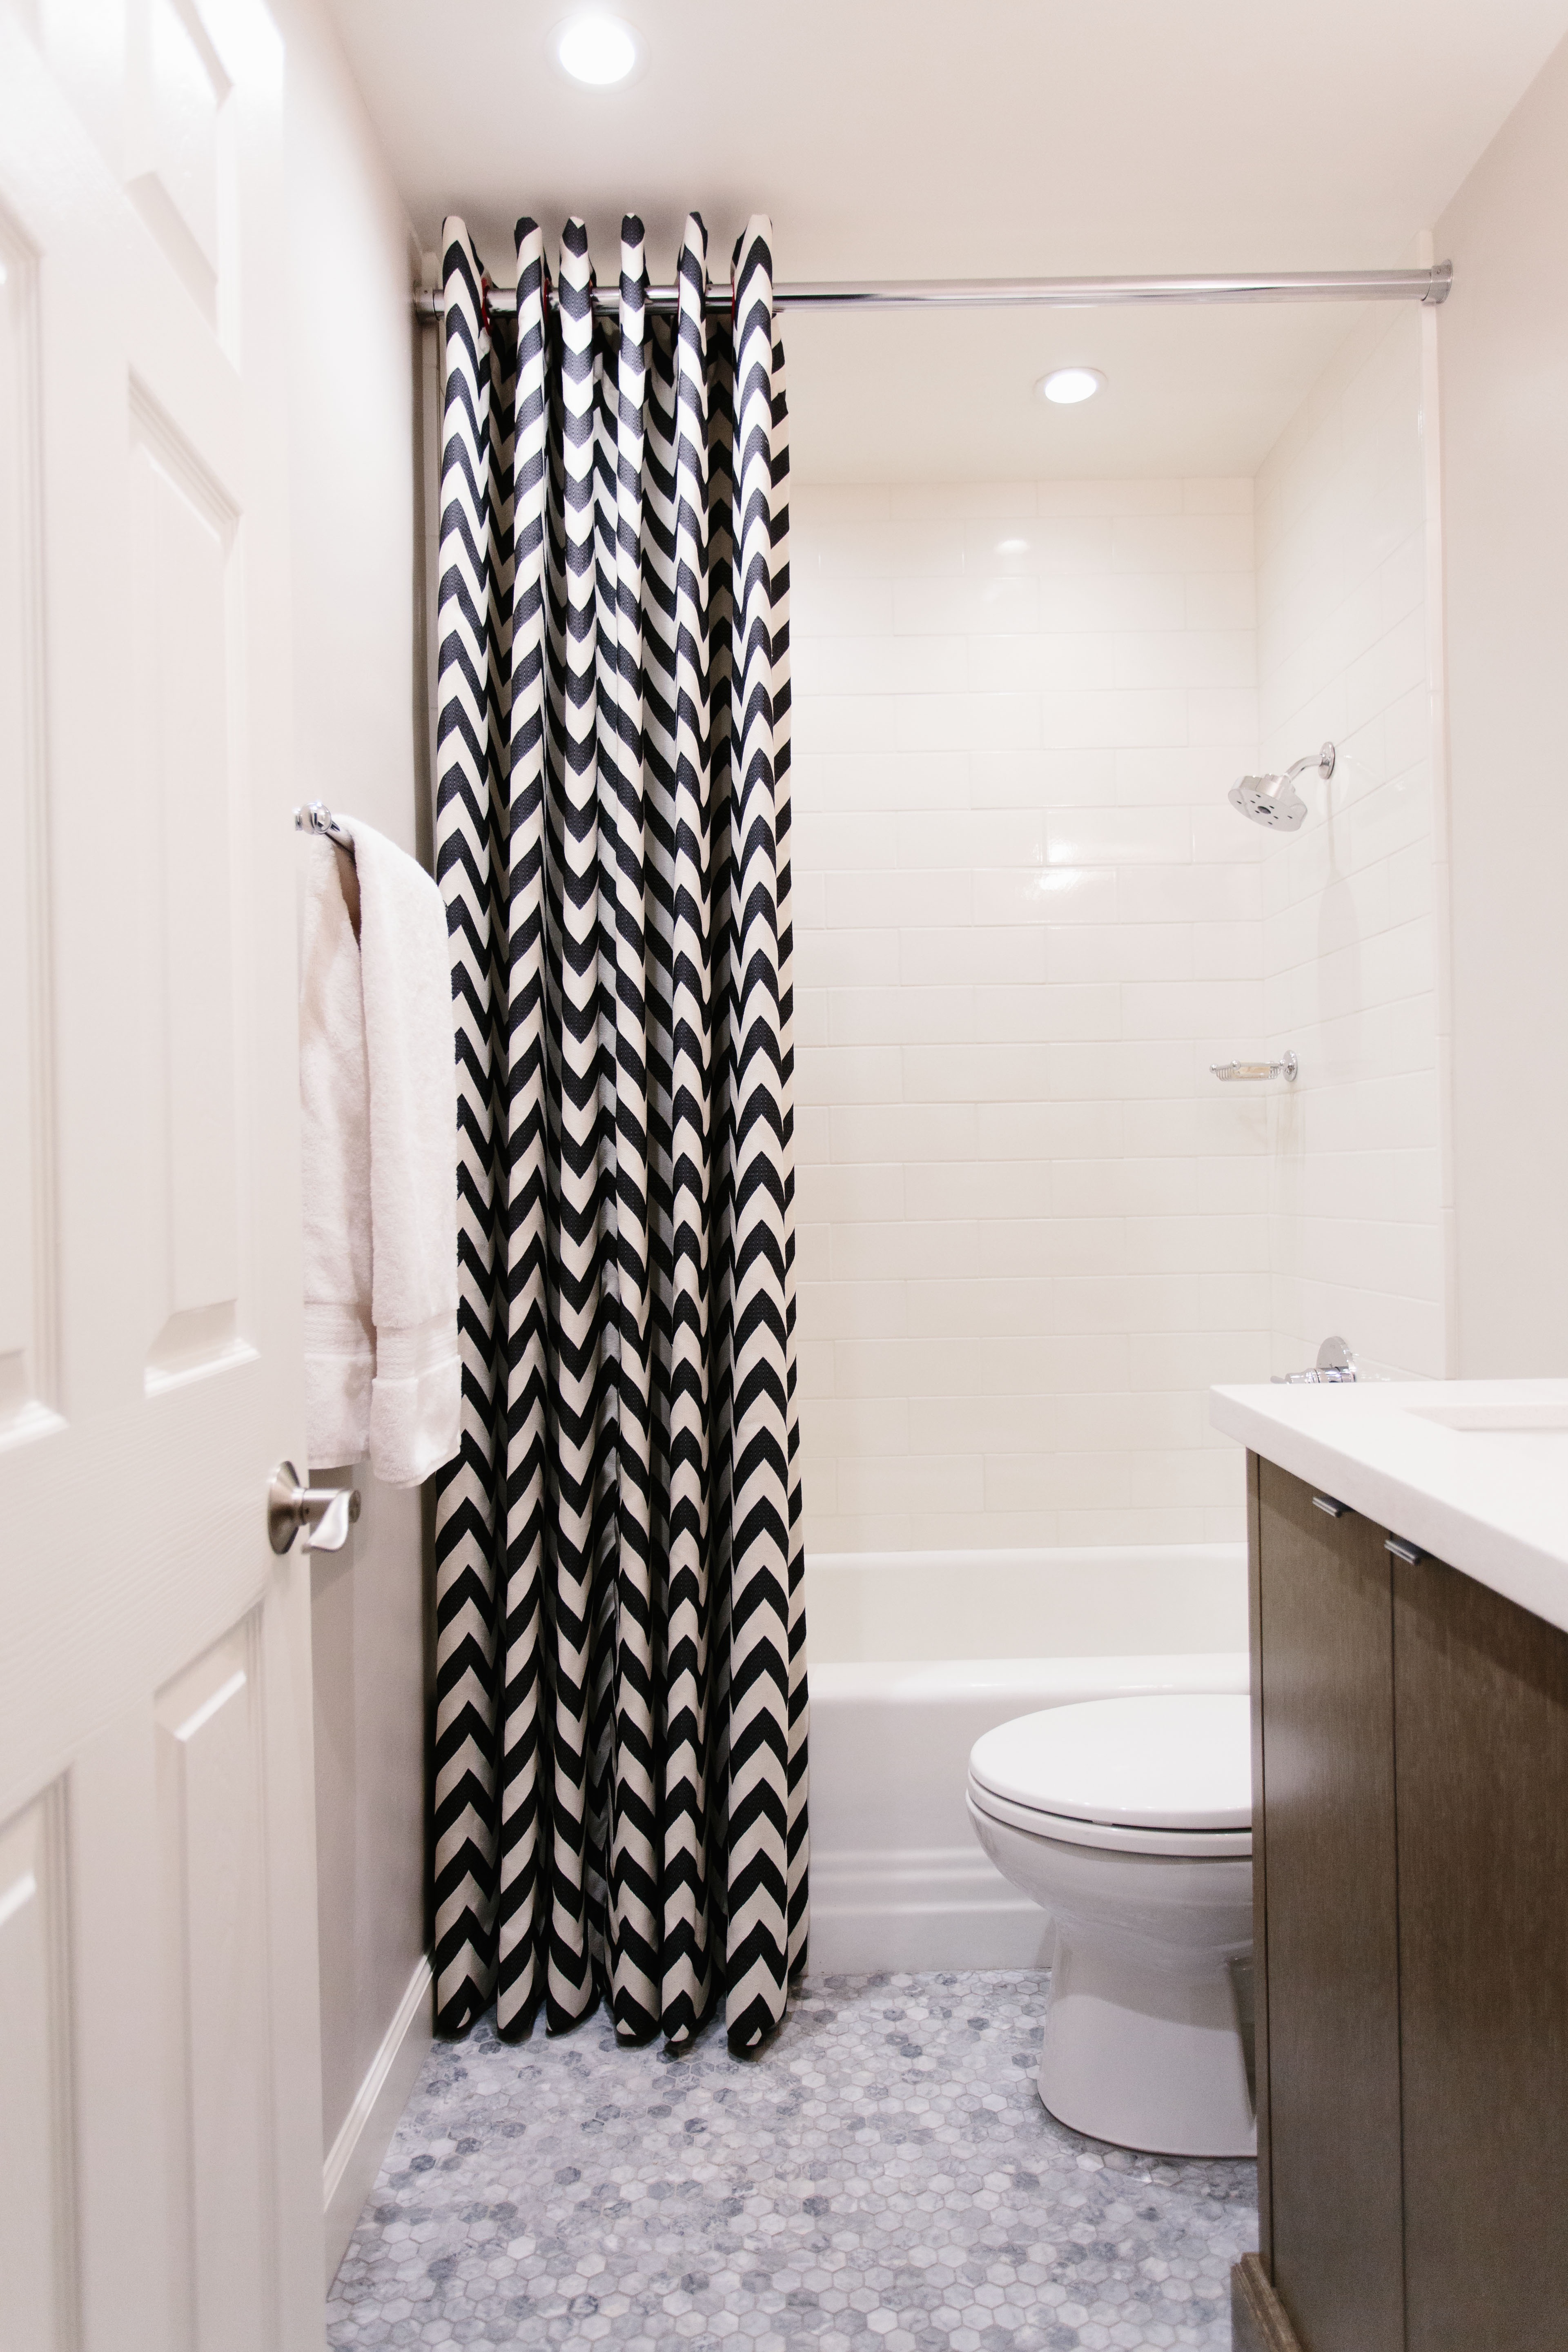 Small Bathroom In White With Black And White Shower Curtain (Image 8 of 14)